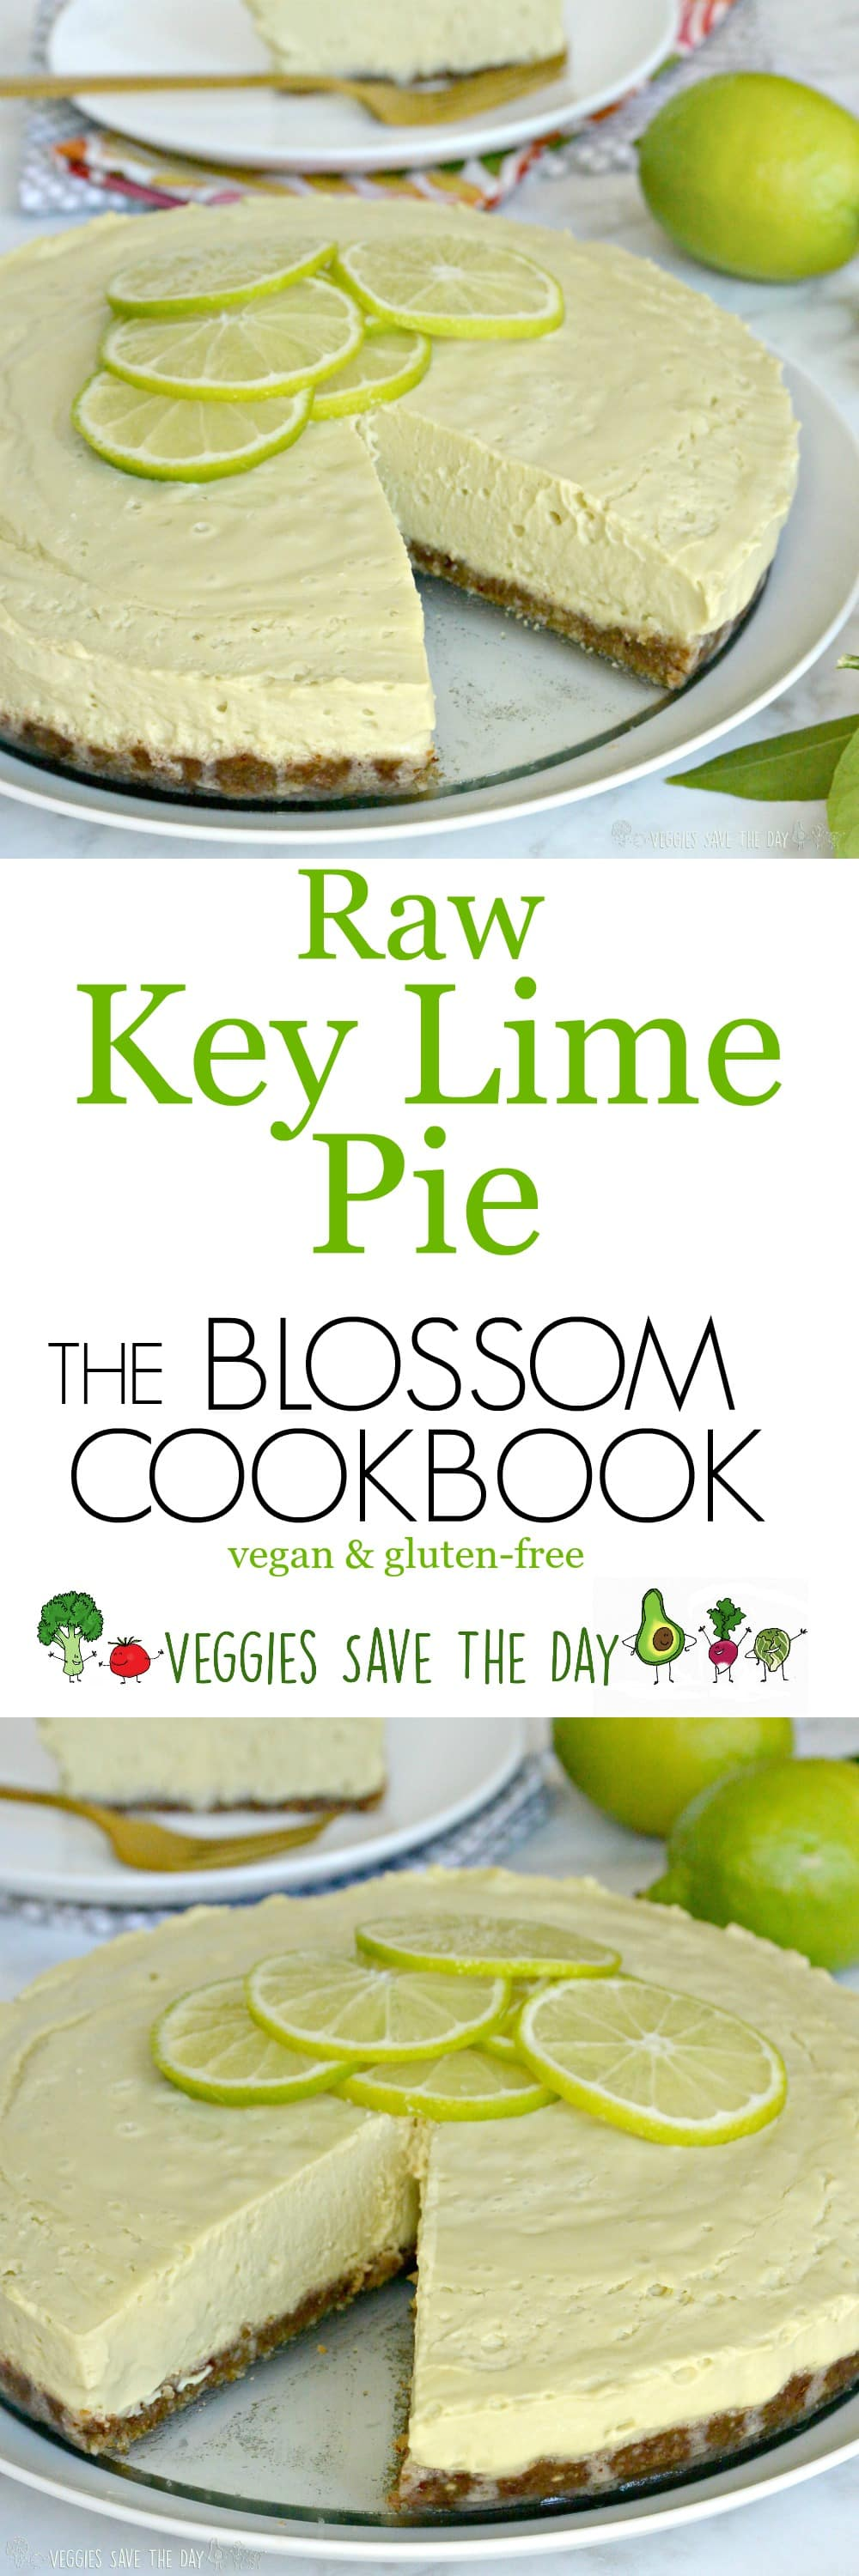 Raw Key Lime Pie from the Blossom Cookbook is vegan, gluten-free, and deliciously creamy!